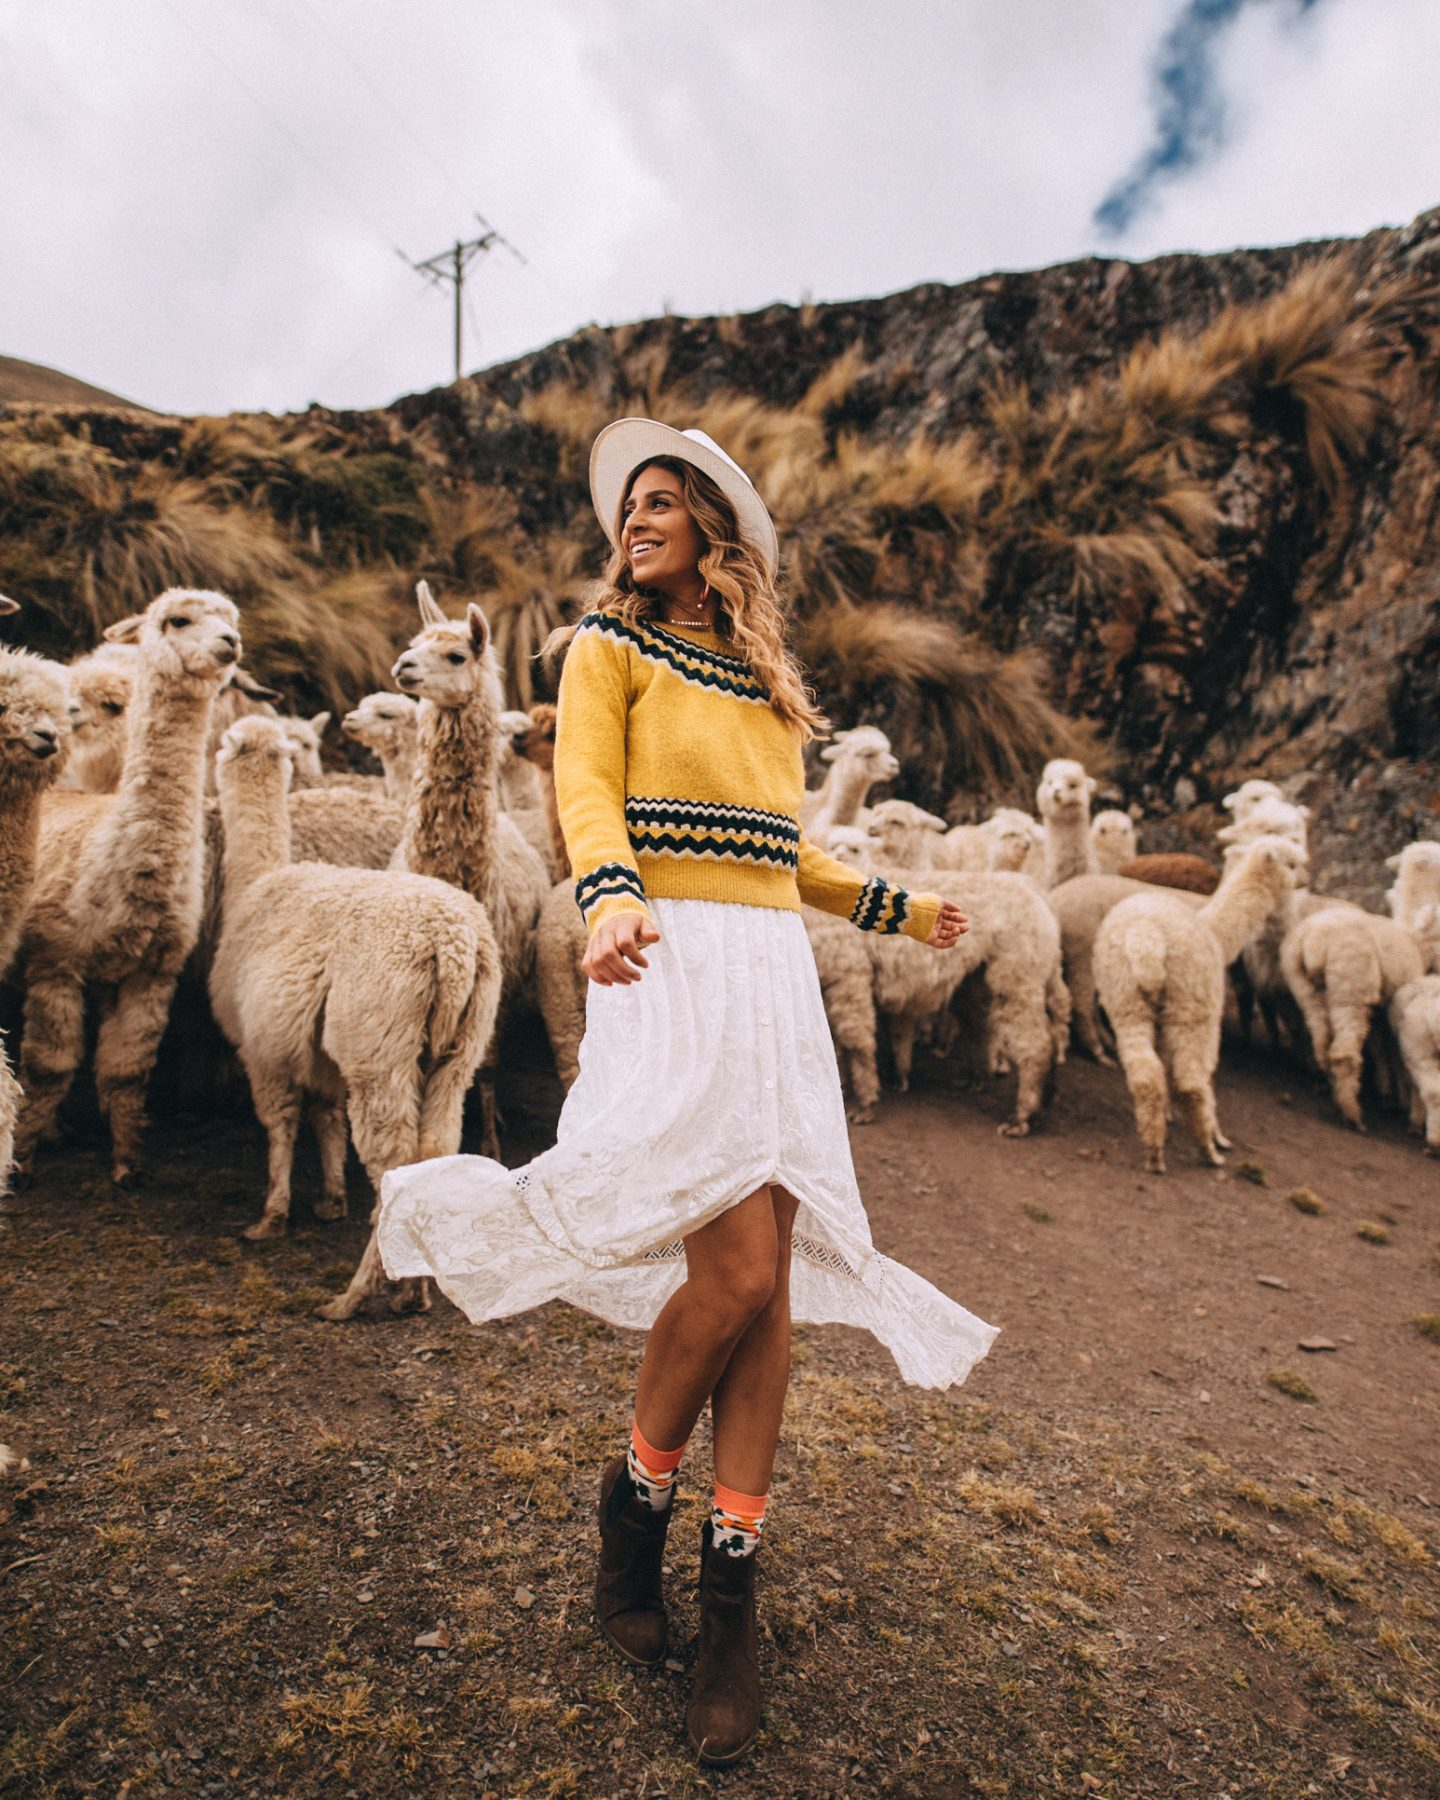 Girl with llamas